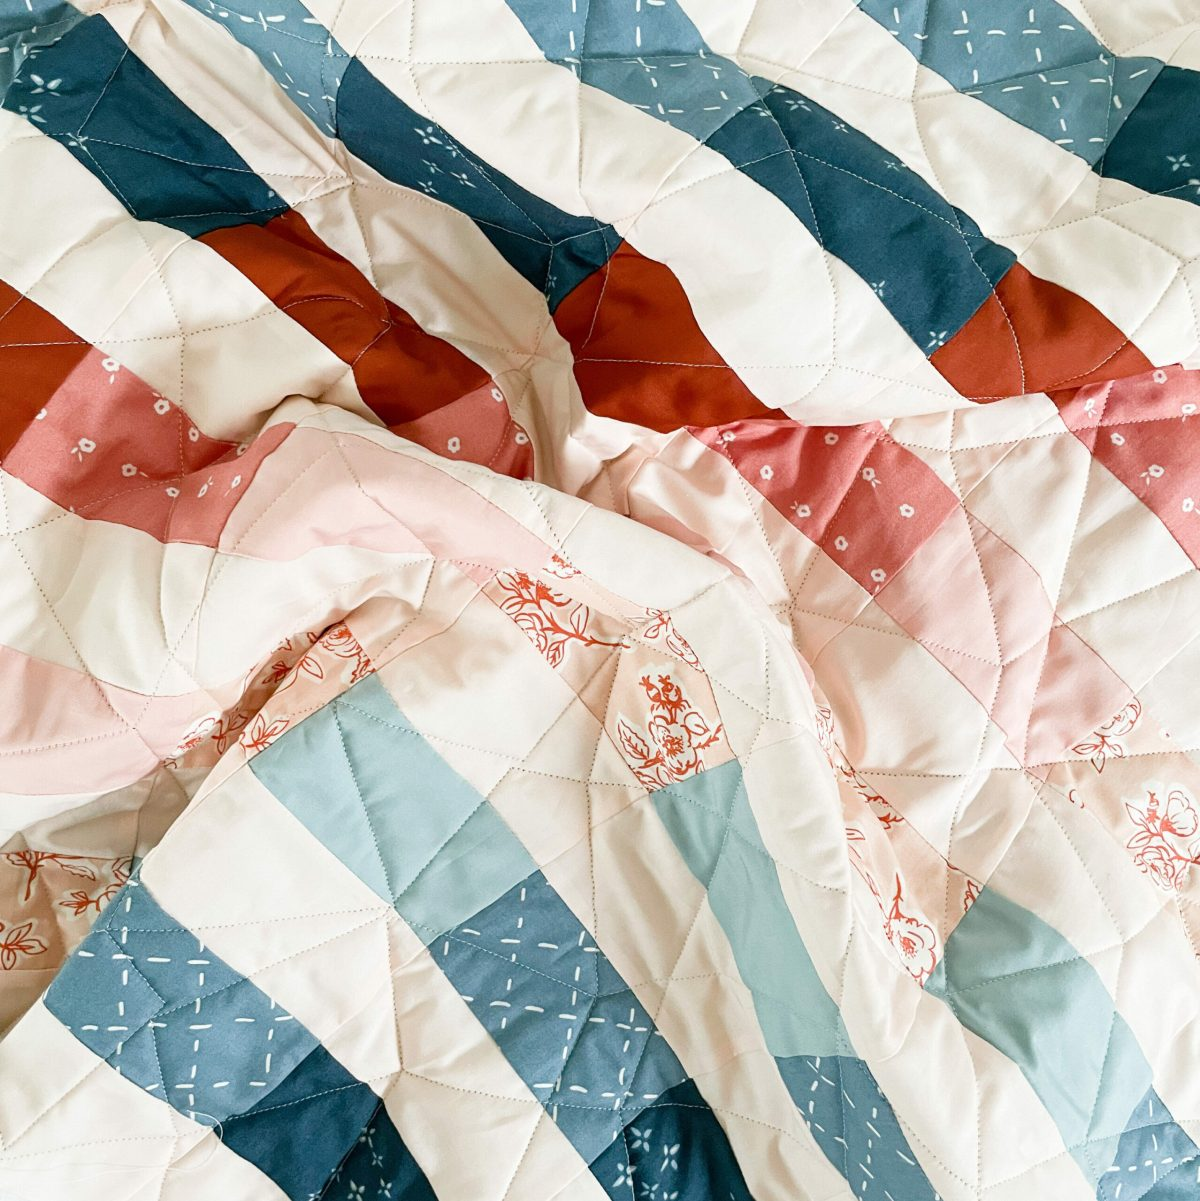 the quilted quilt top